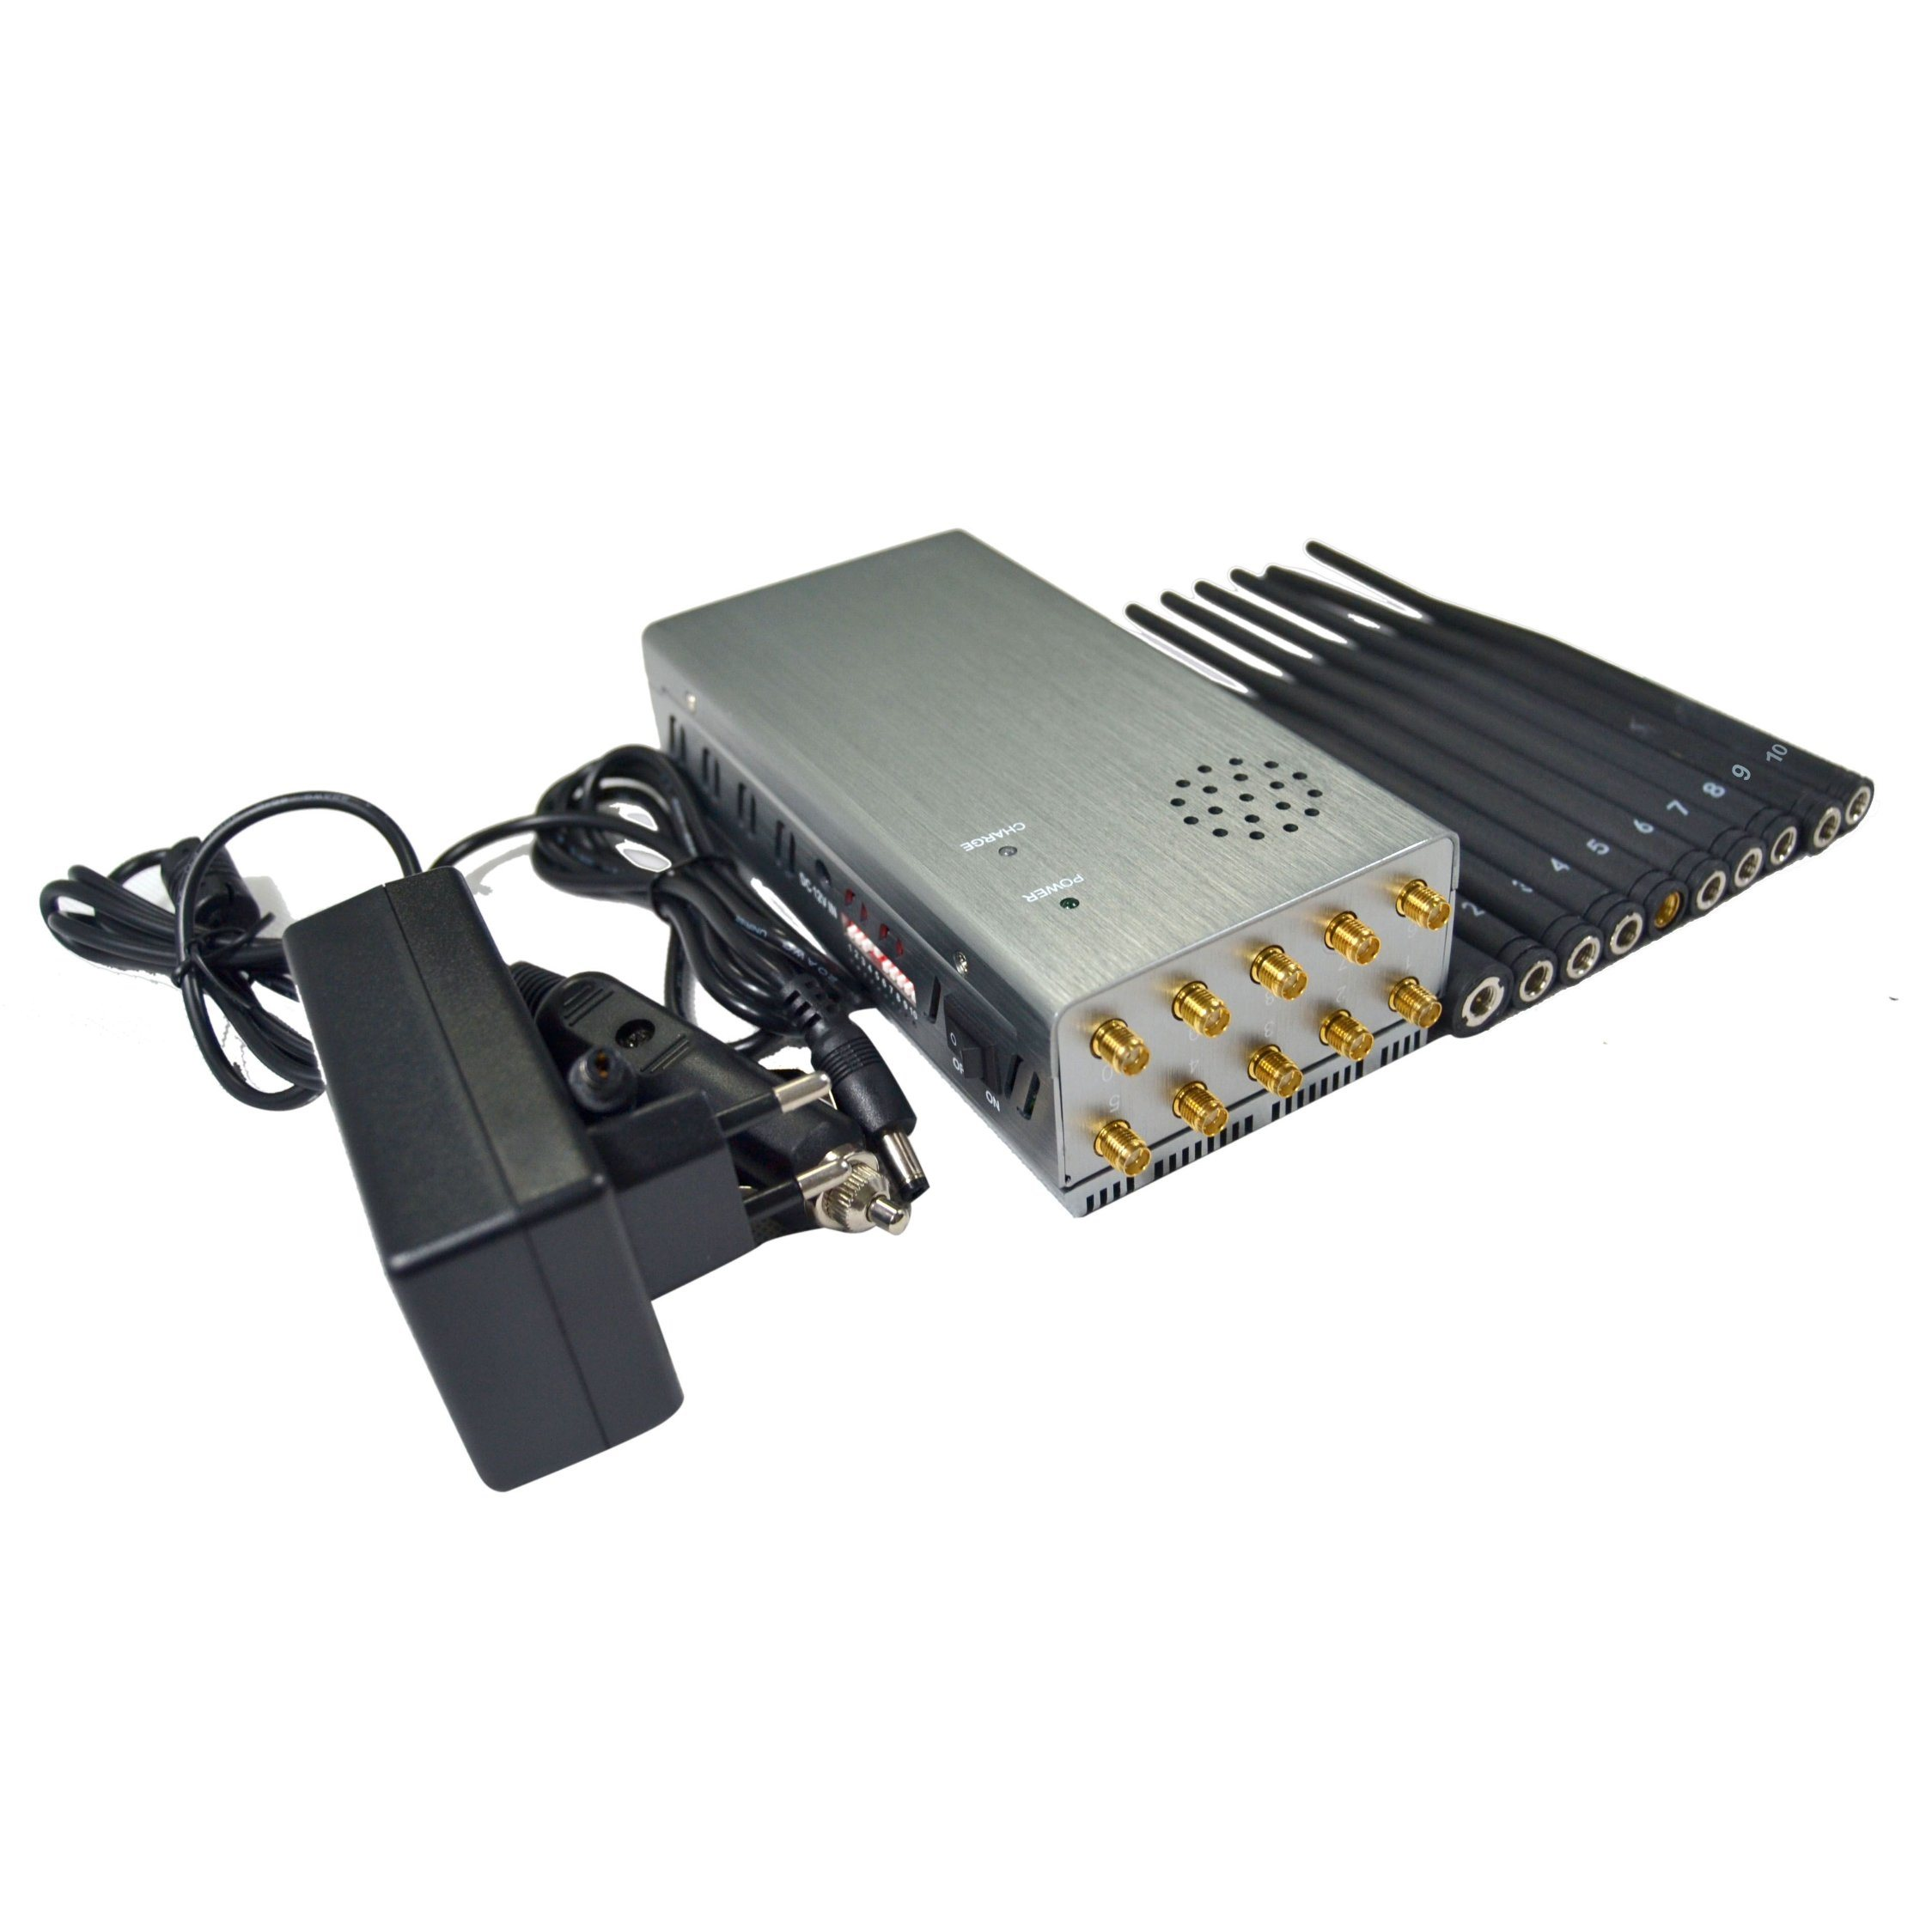 phone jammers legal news - China The King of Portable Jammers with 8000mA and 10 Antennas Including 2g 3G 4G 5g GPS 433MHz315MHz868MHz WiFi - China 8000mA Battery Jammer, Large Volume Power Signal Blocker